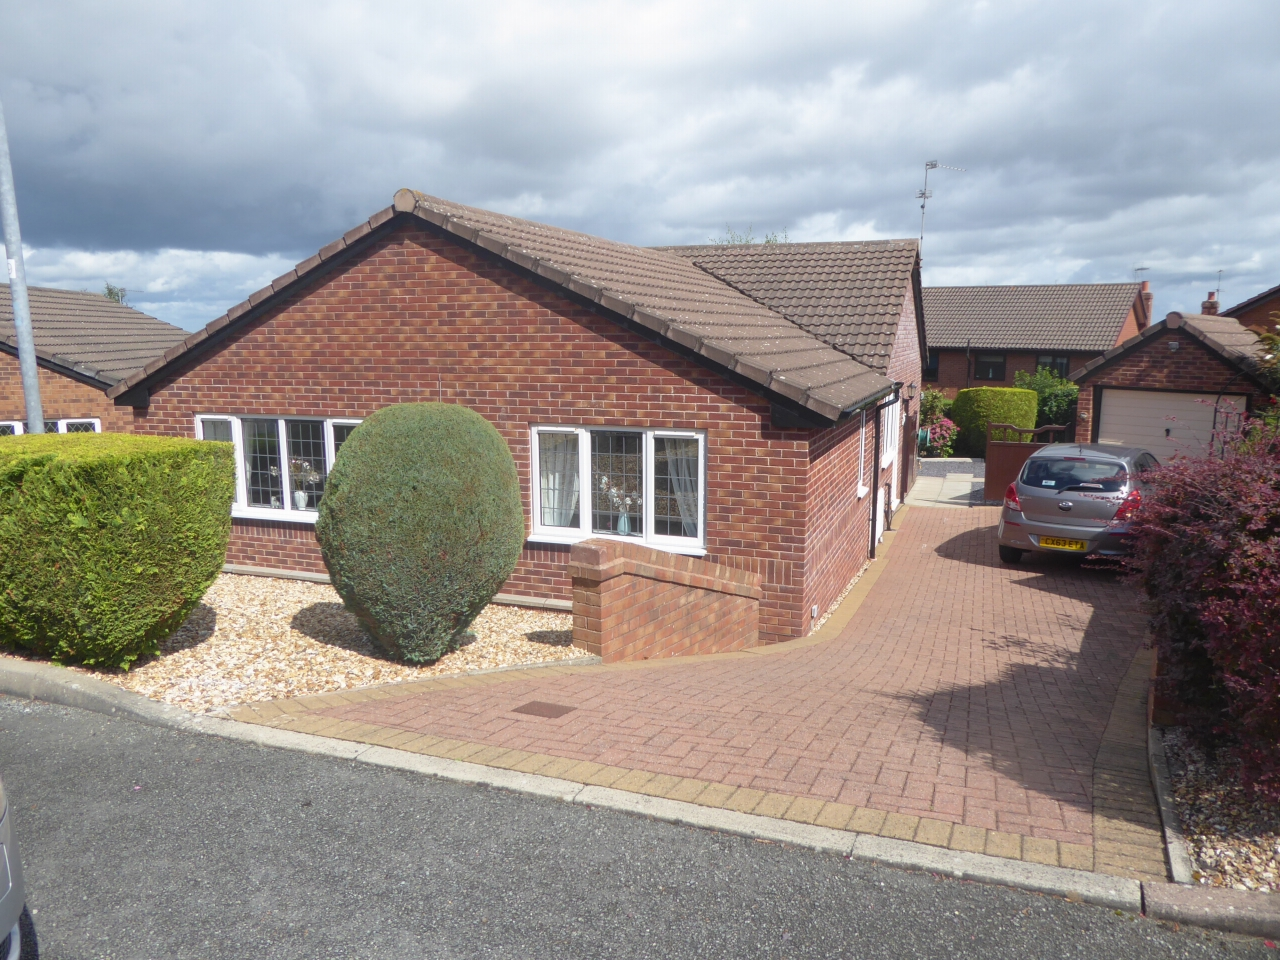 3 bedroom detached bungalow SSTC in Abergele - Photograph 1